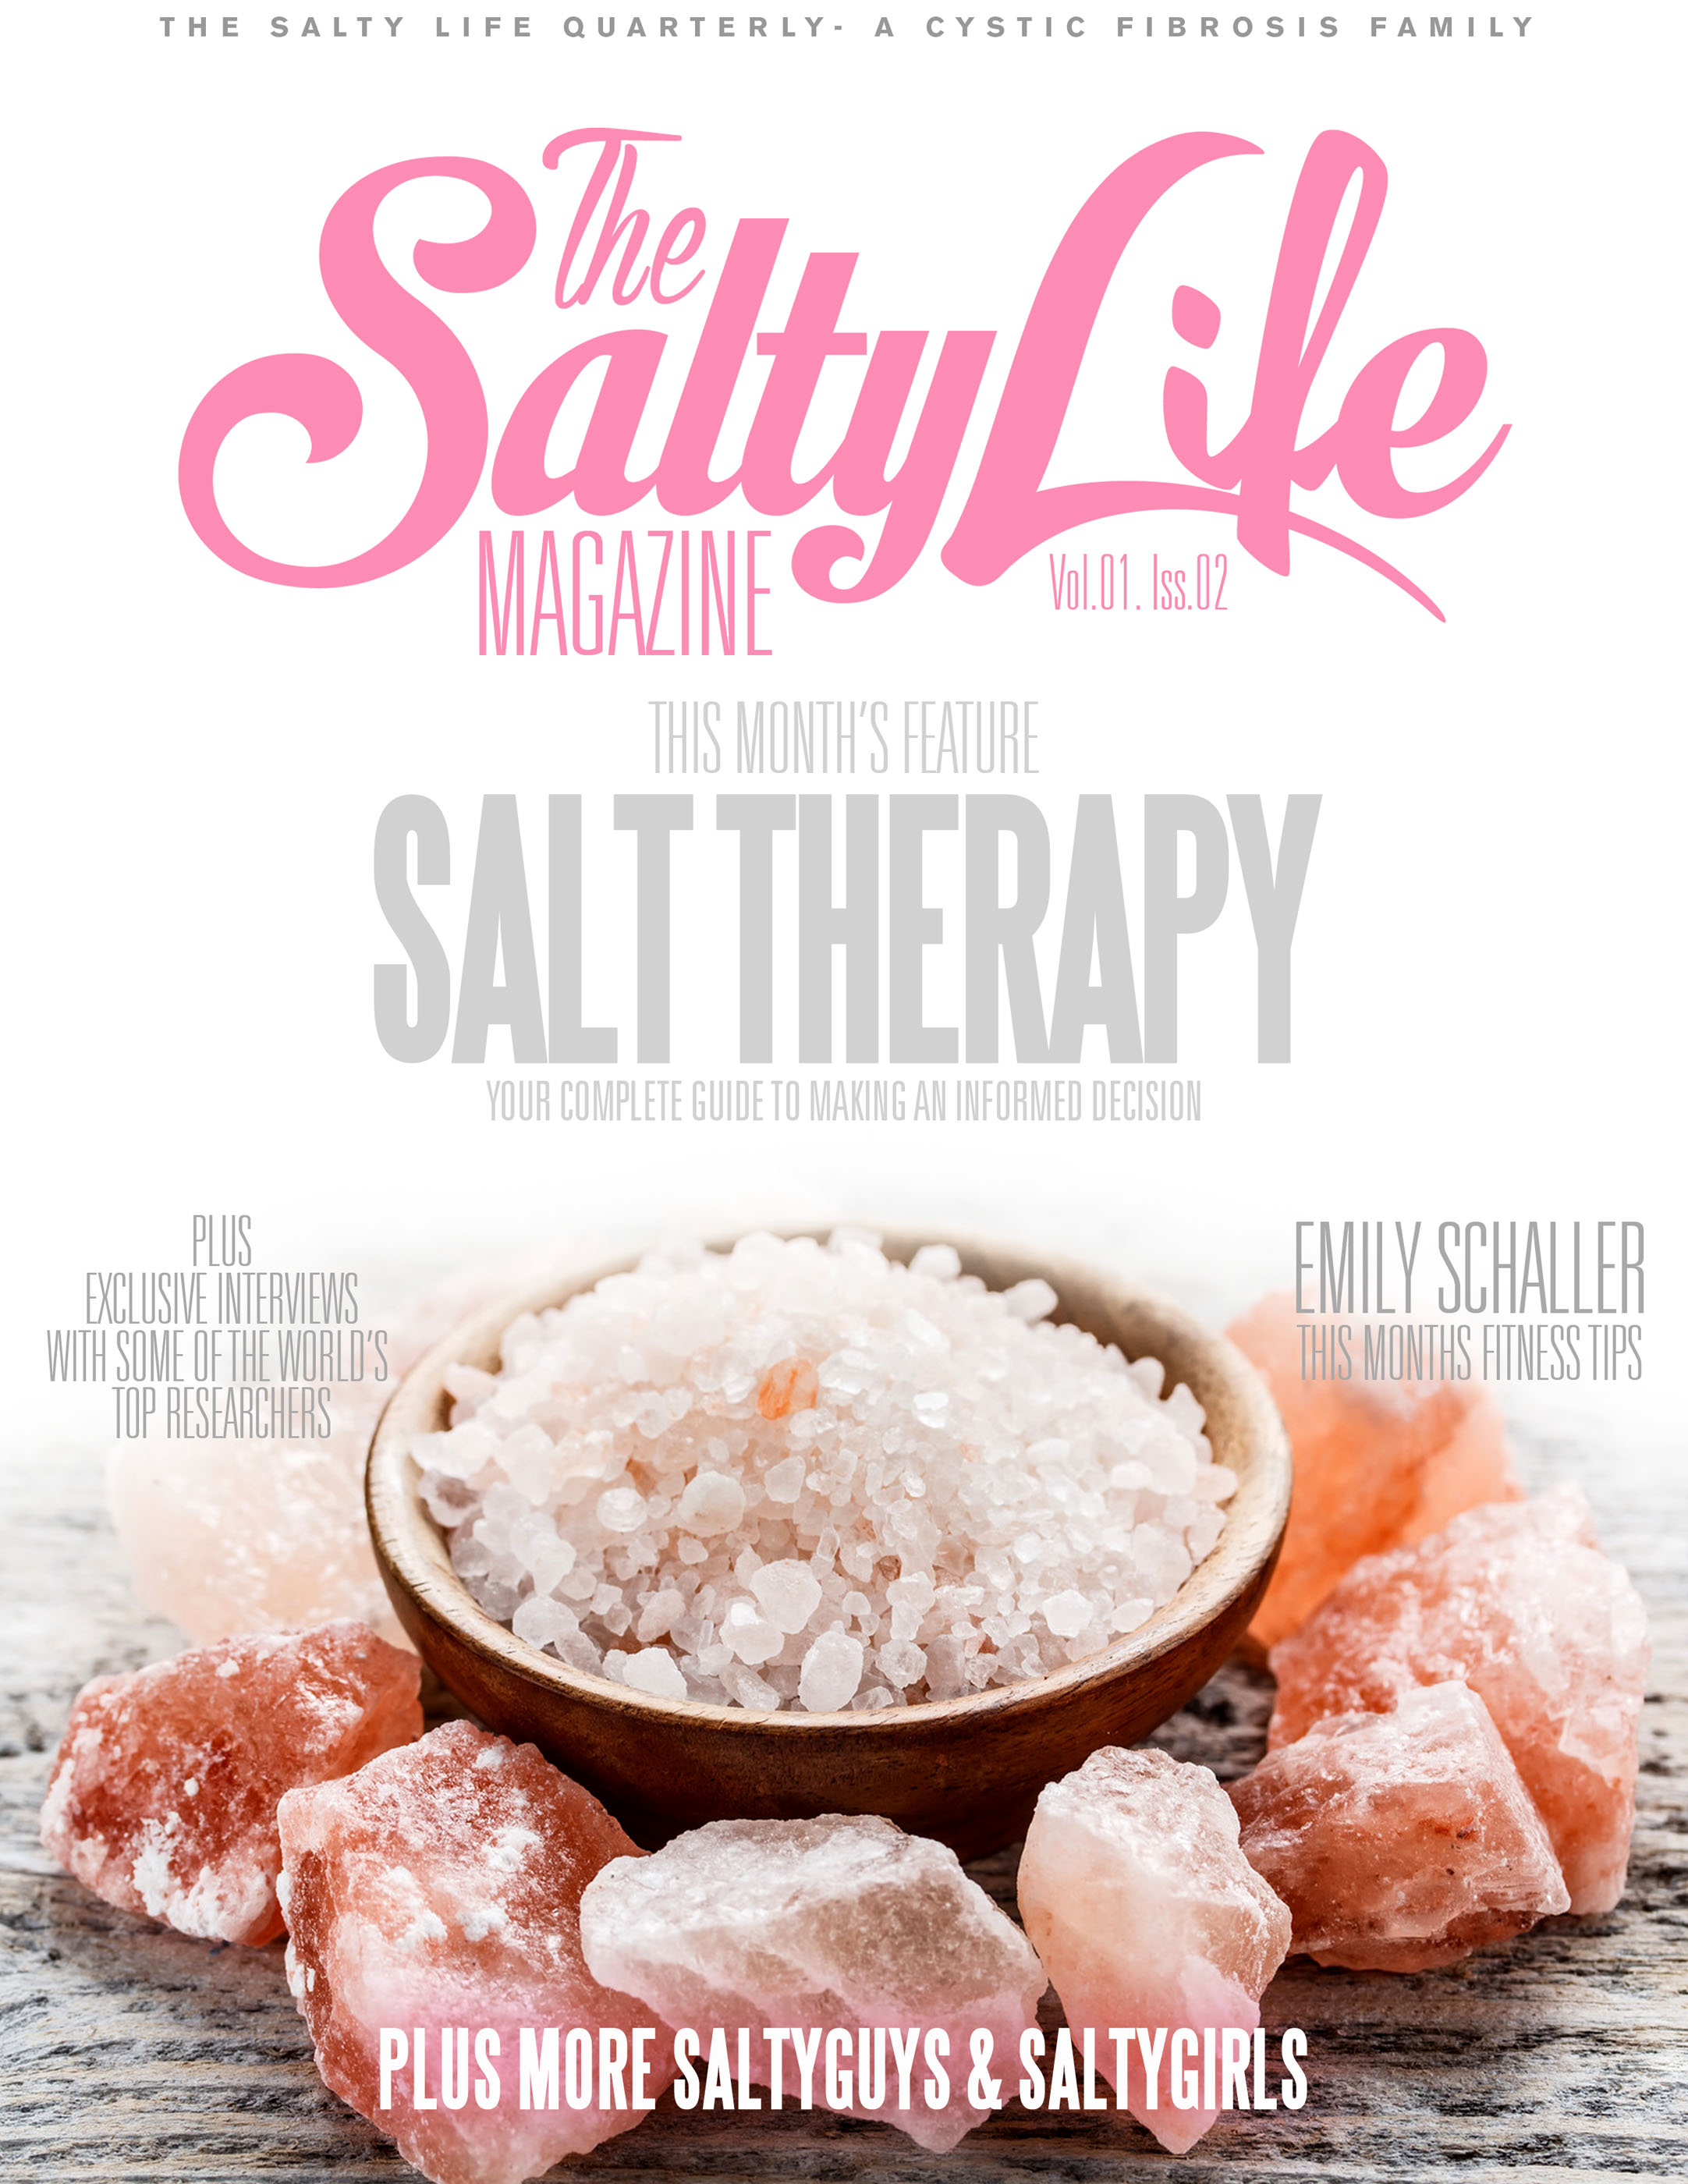 Salt Lamps For Cystic Fibrosis : Cystic Fibrosis Magazine From Ian Pettigrew Is Called The SaltyLife The Mighty